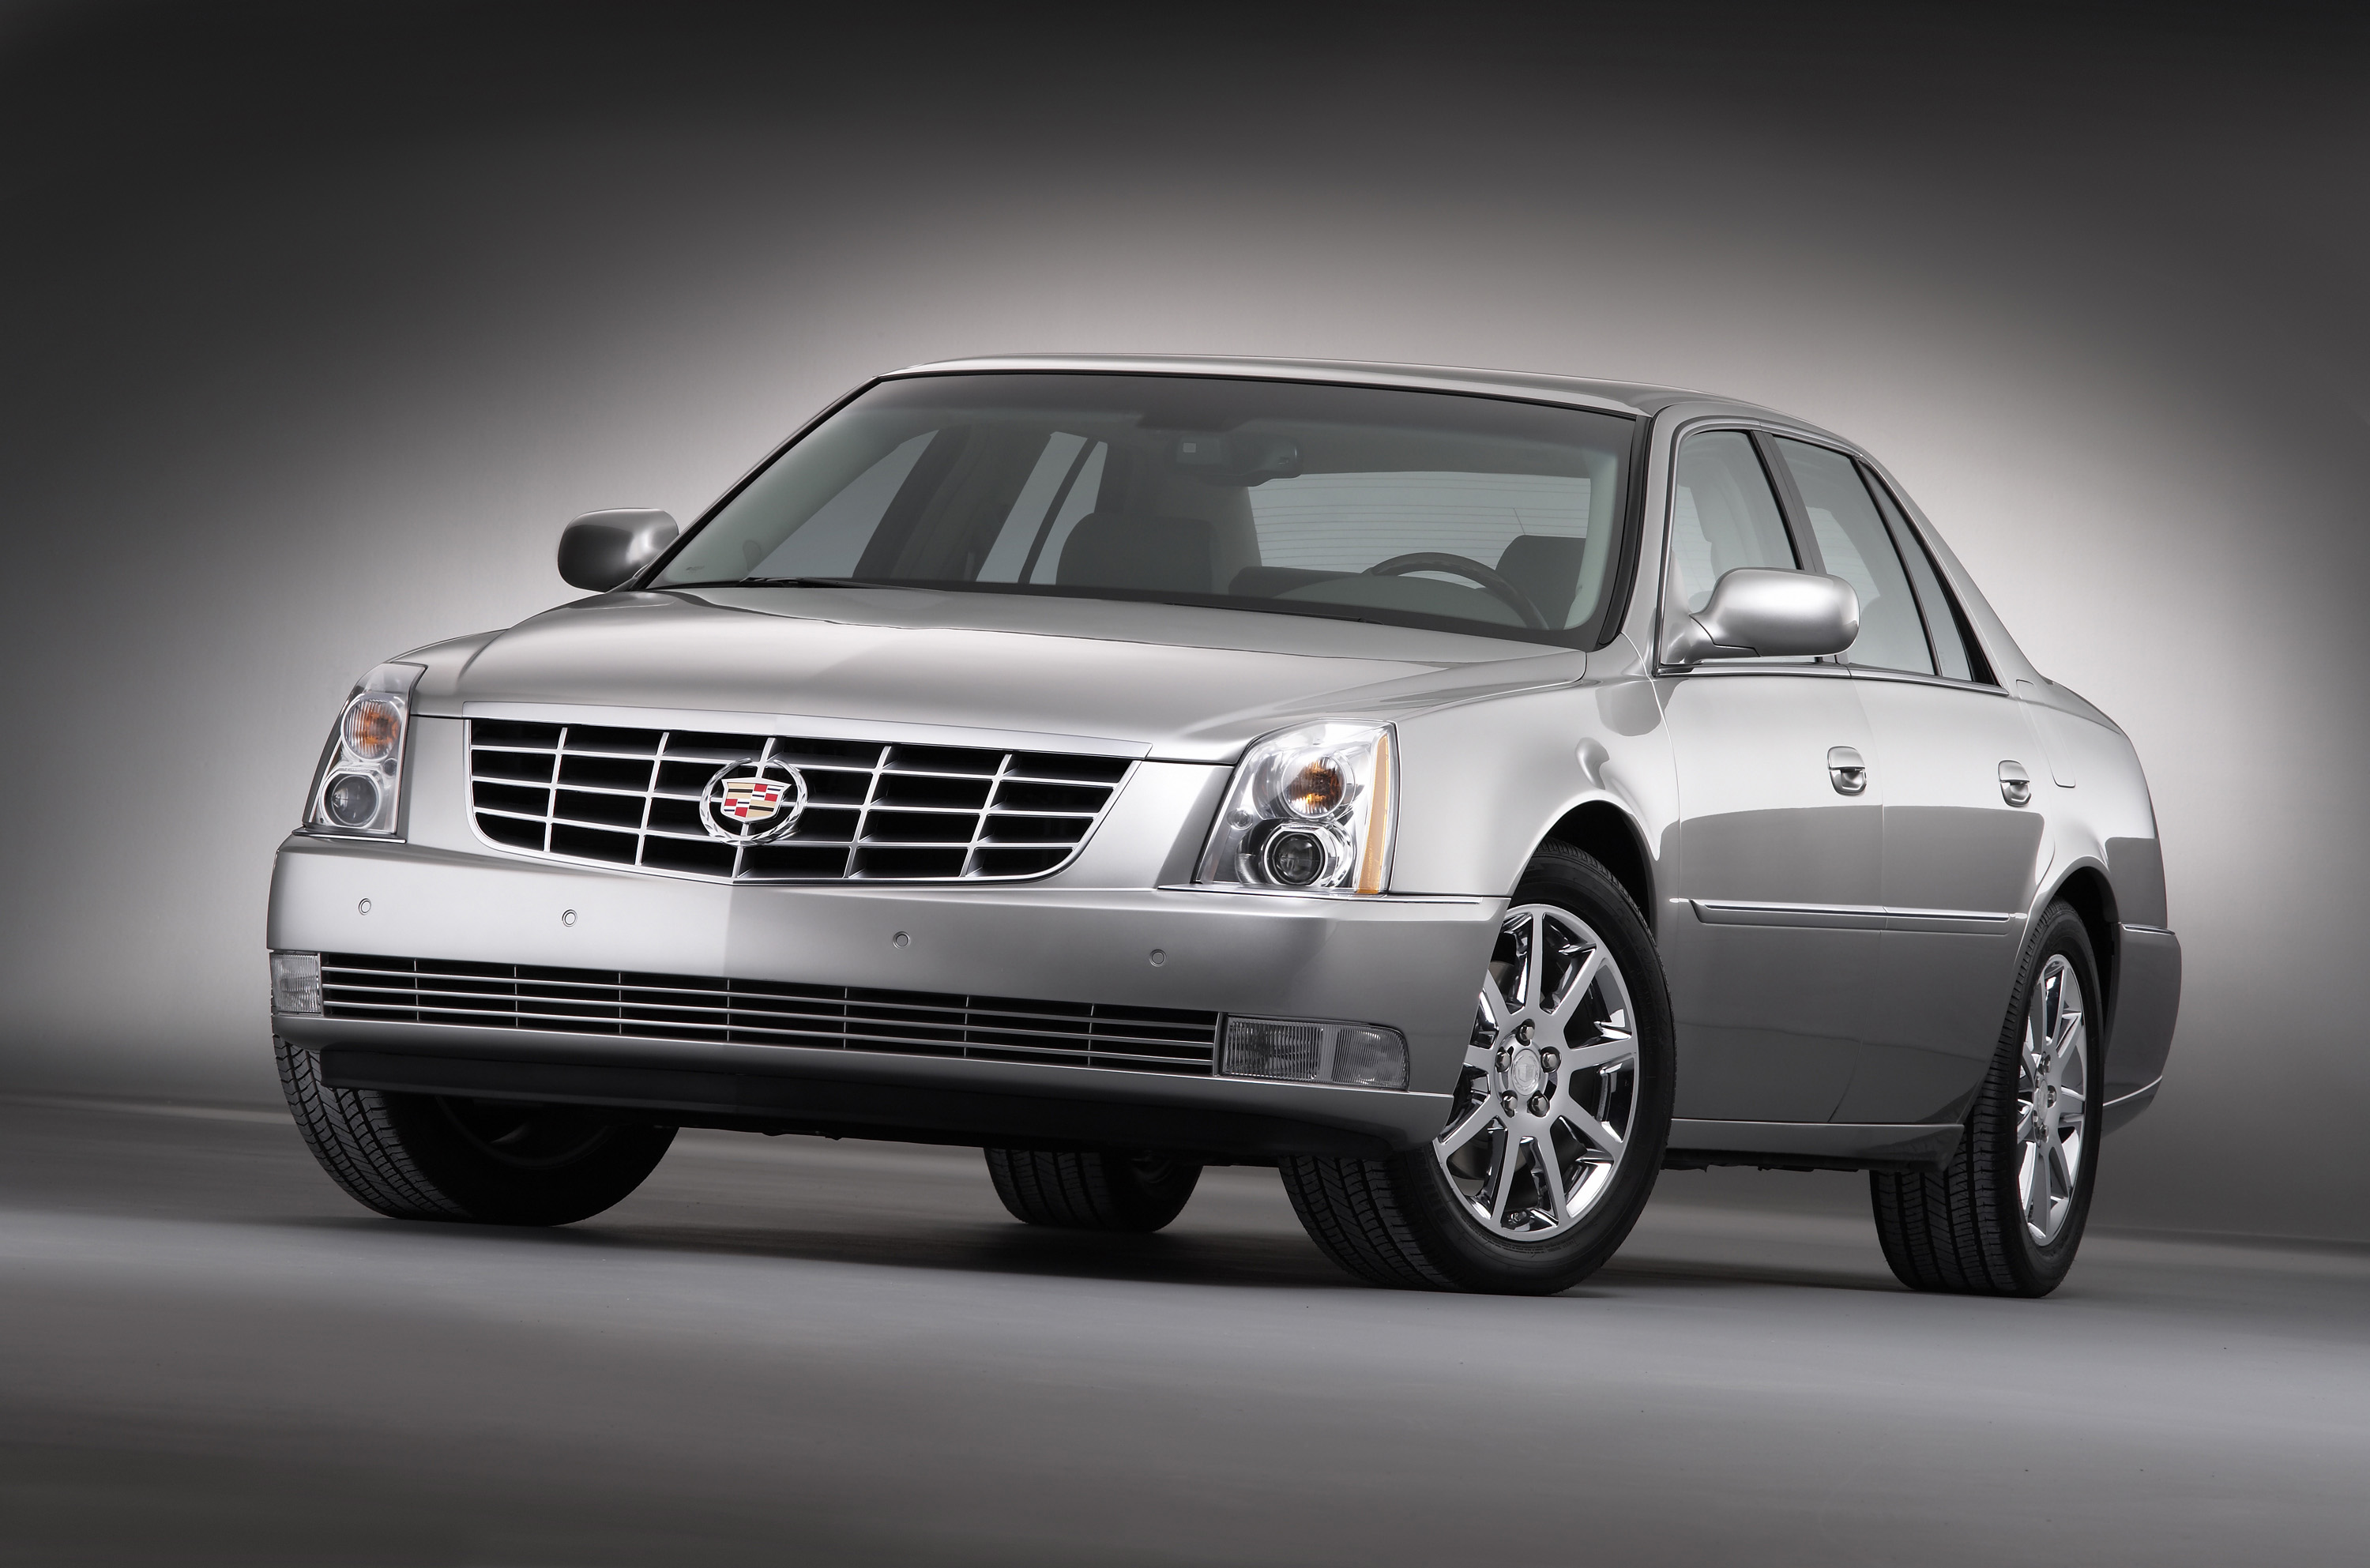 city cadillac com post member in dts cardomain or gorillakutty profile original another rose s